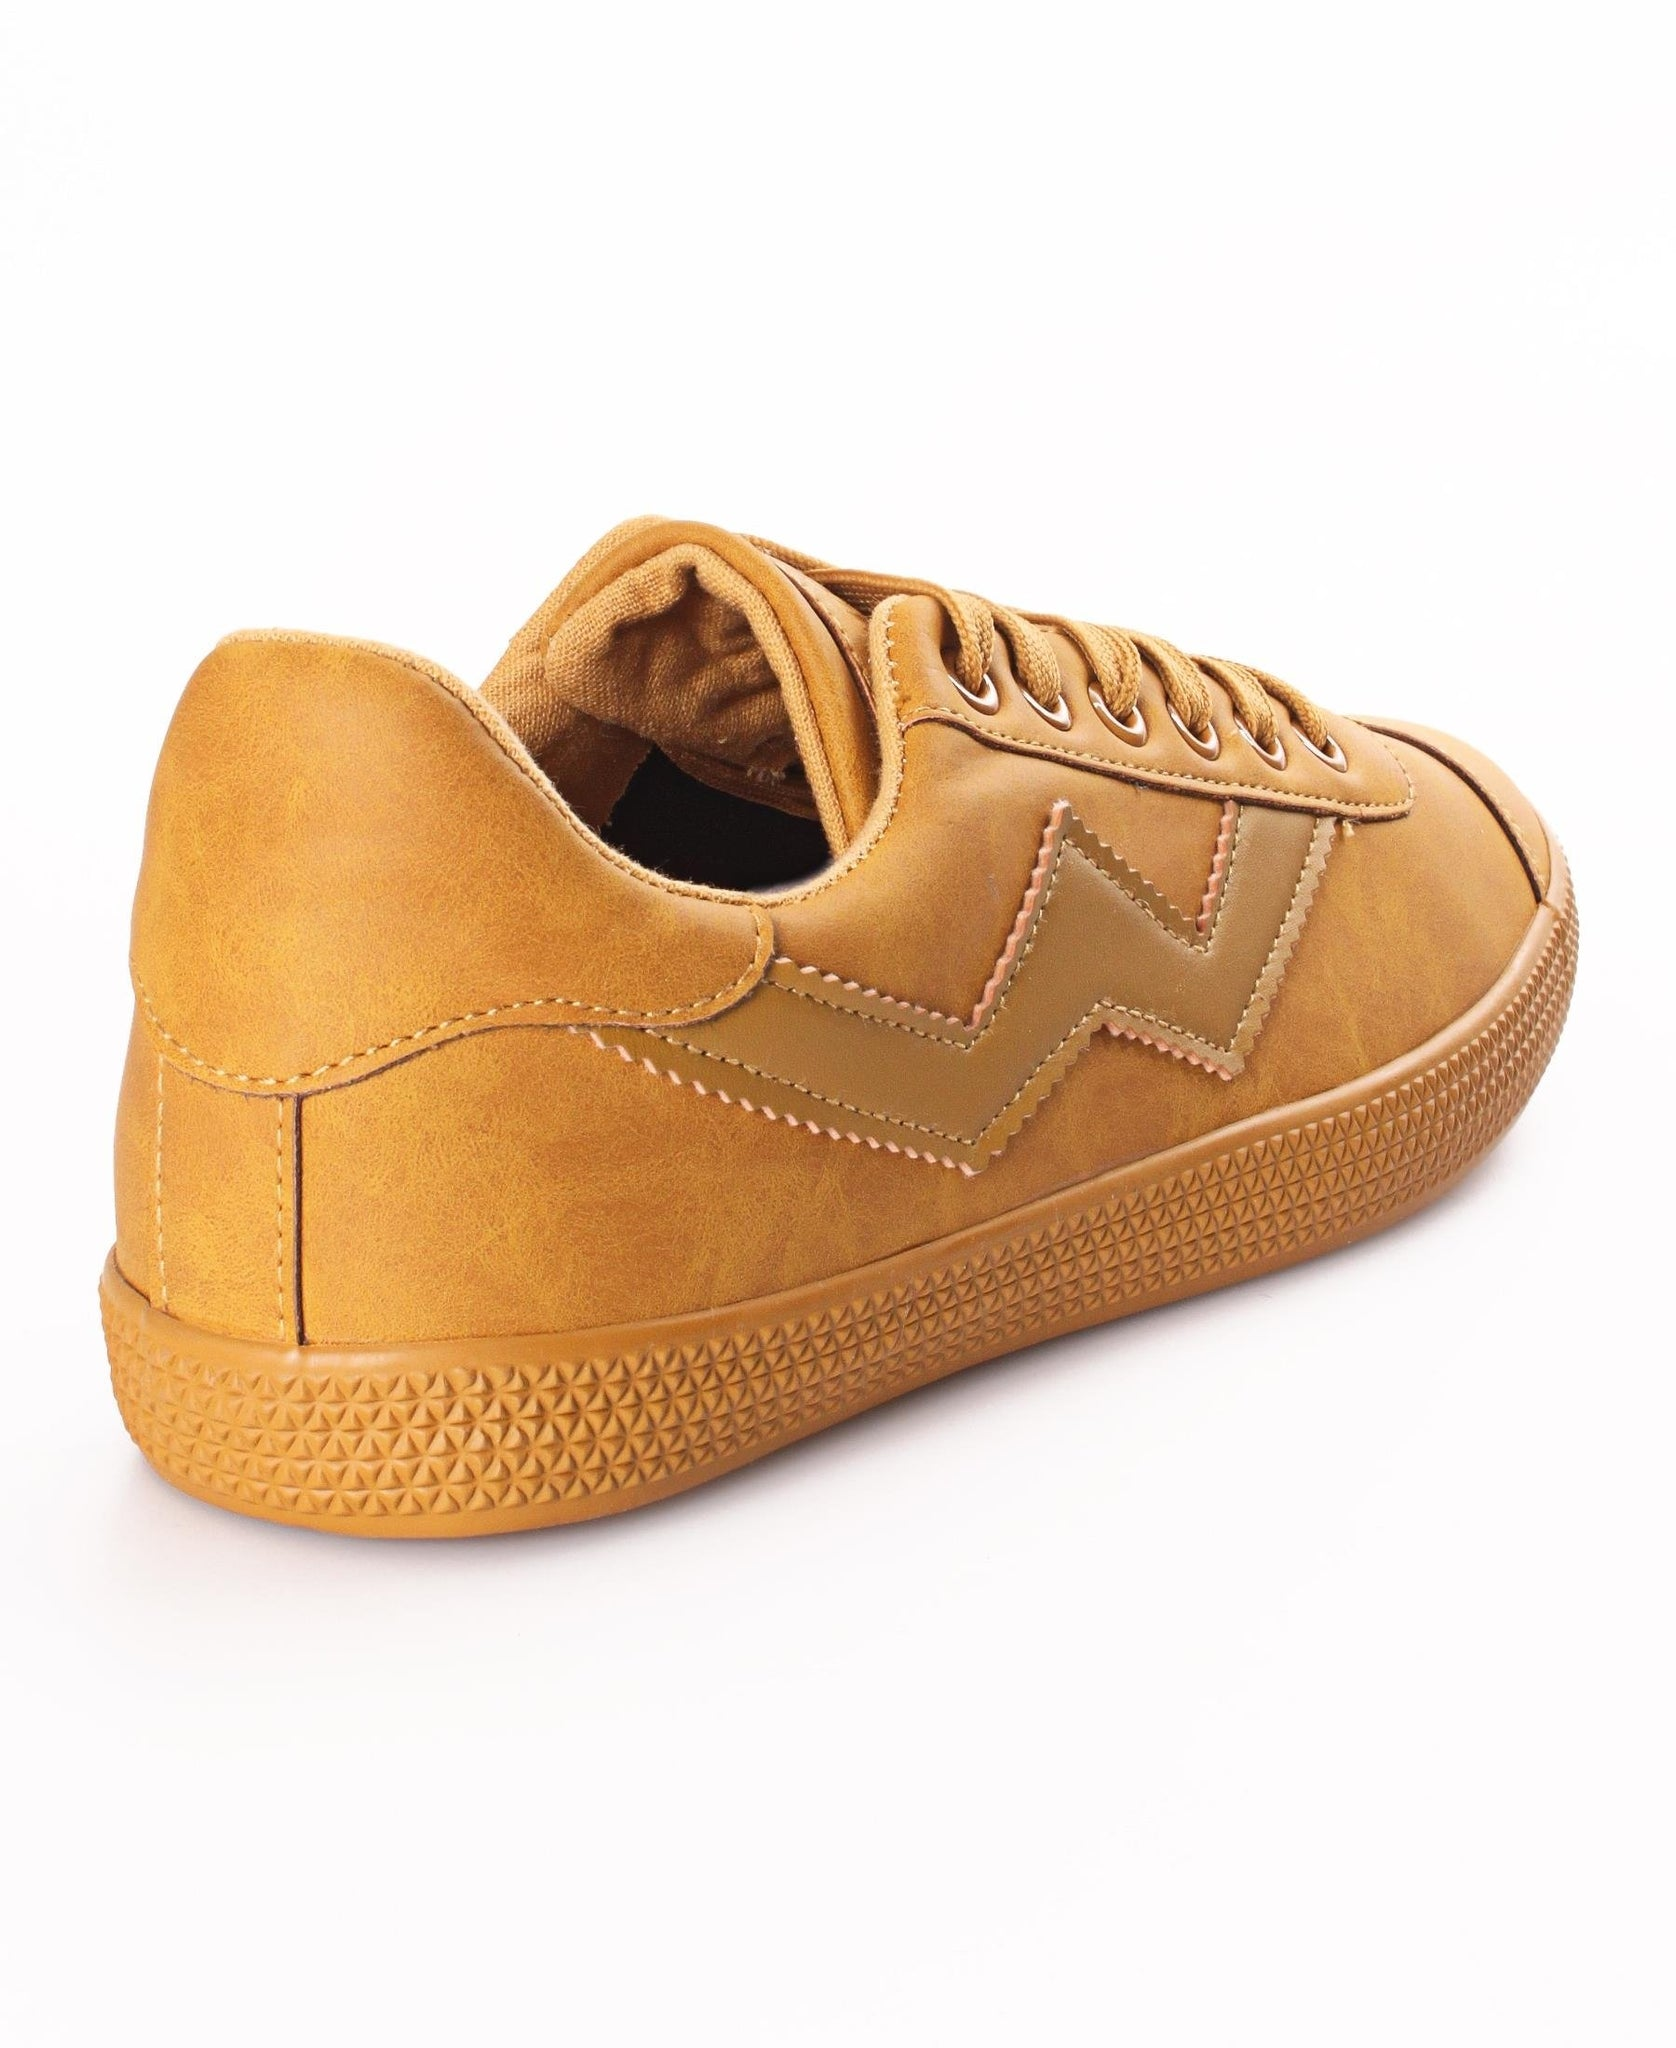 Men's Light Sneakers - Mustard